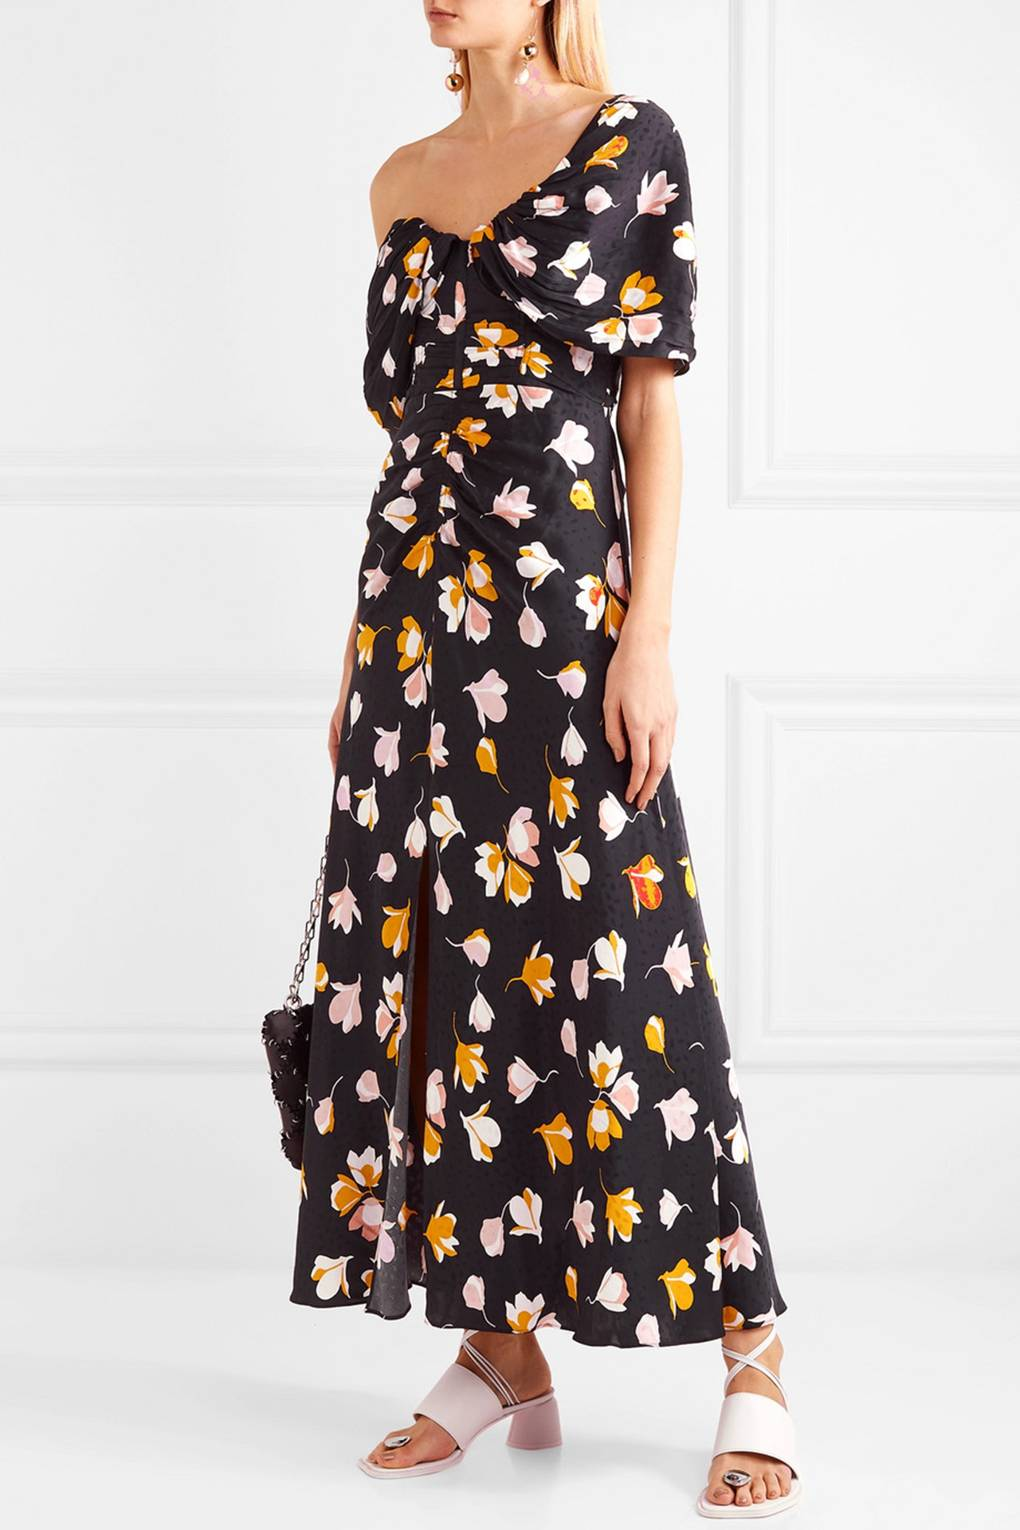 f7070e19e68c Spring Wedding Guest Dresses - What To Wear To A Wedding In 2019 | Glamour  UK